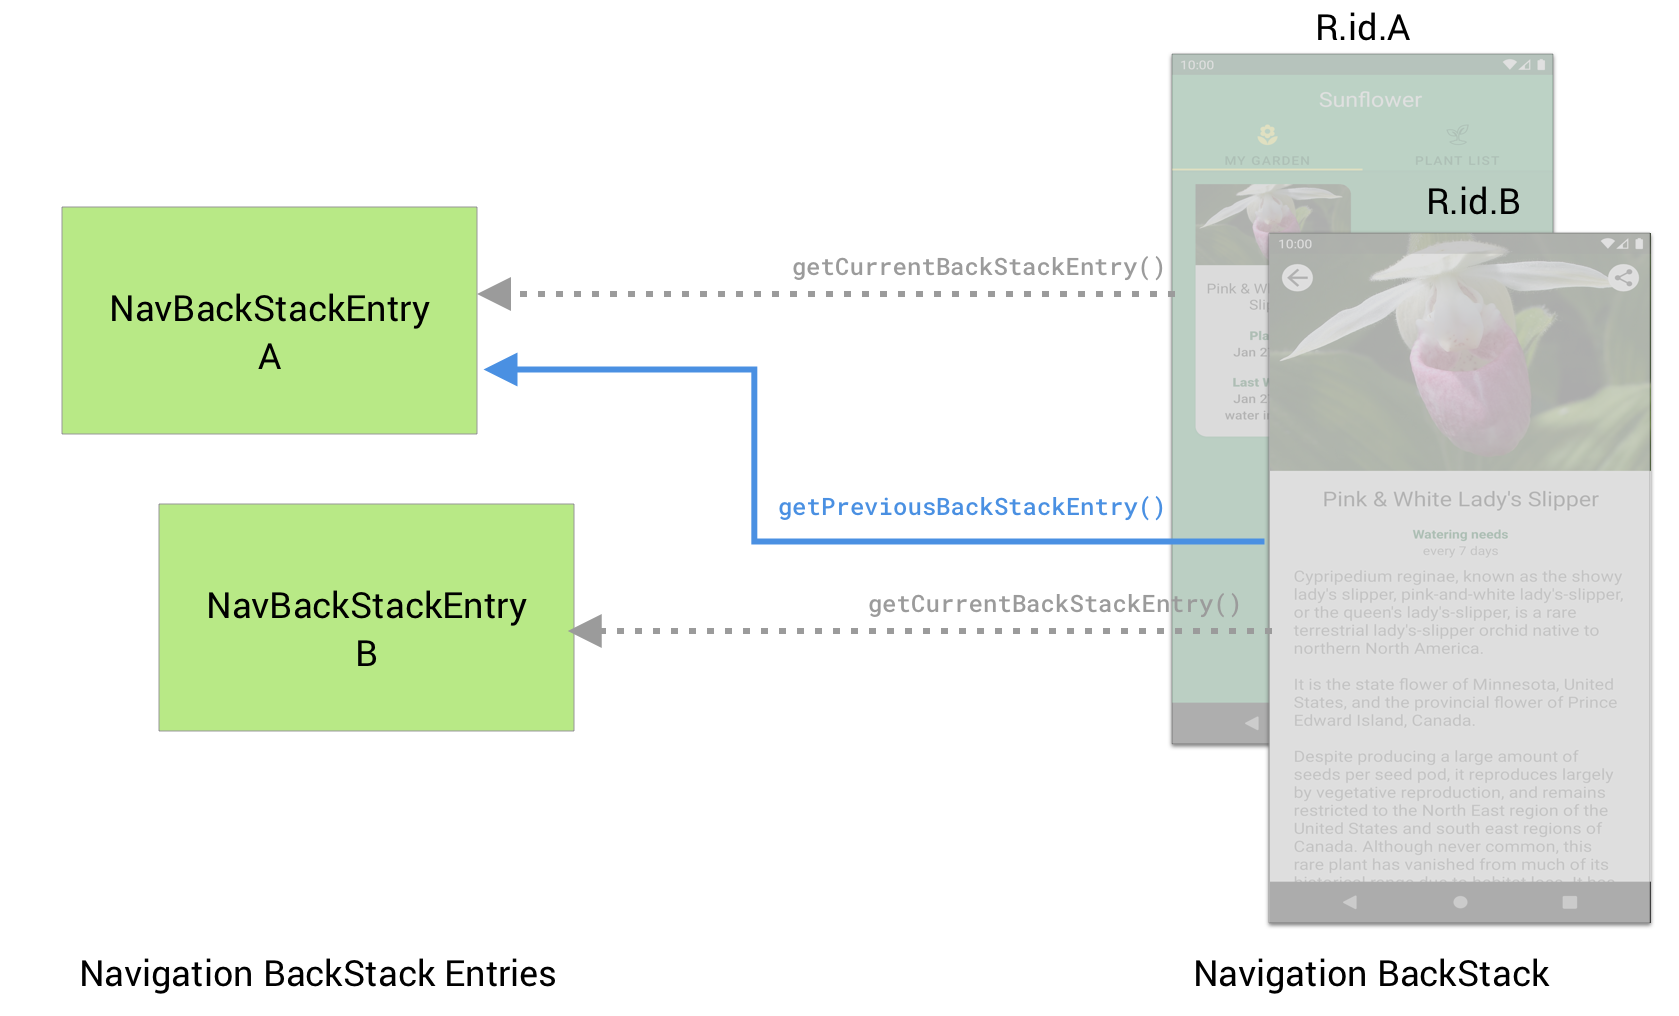 Destination B can use getPreviousBackStackEntry() to retrieve             the NavBackStackEntry for the previous destination A